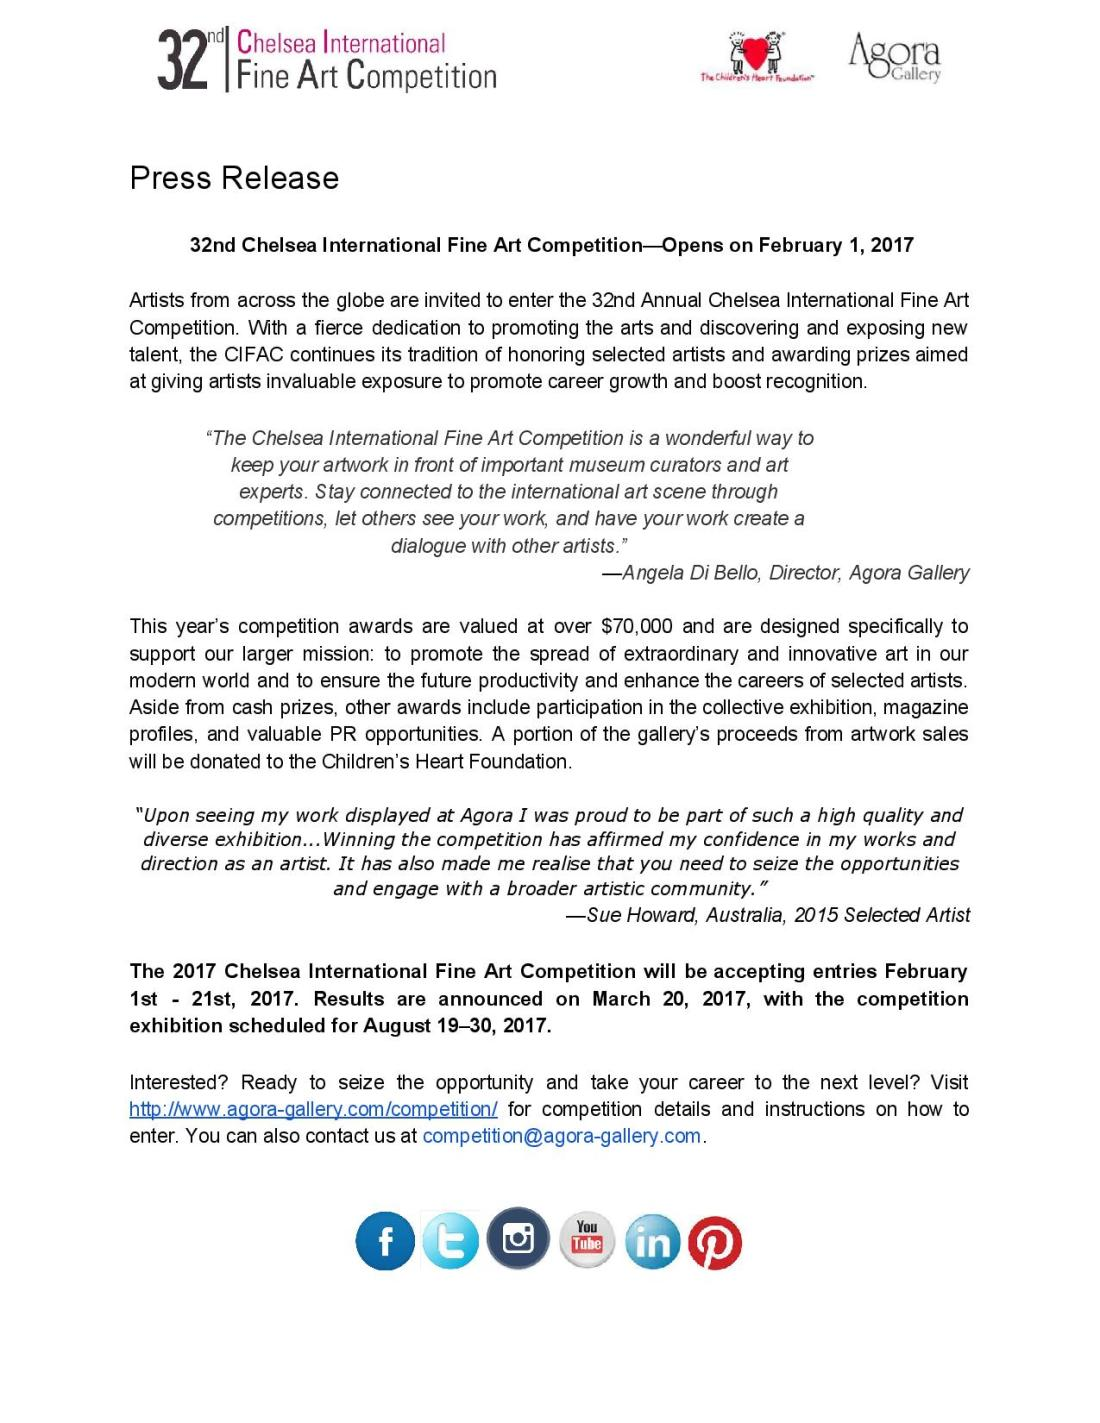 press_release-1-page-001